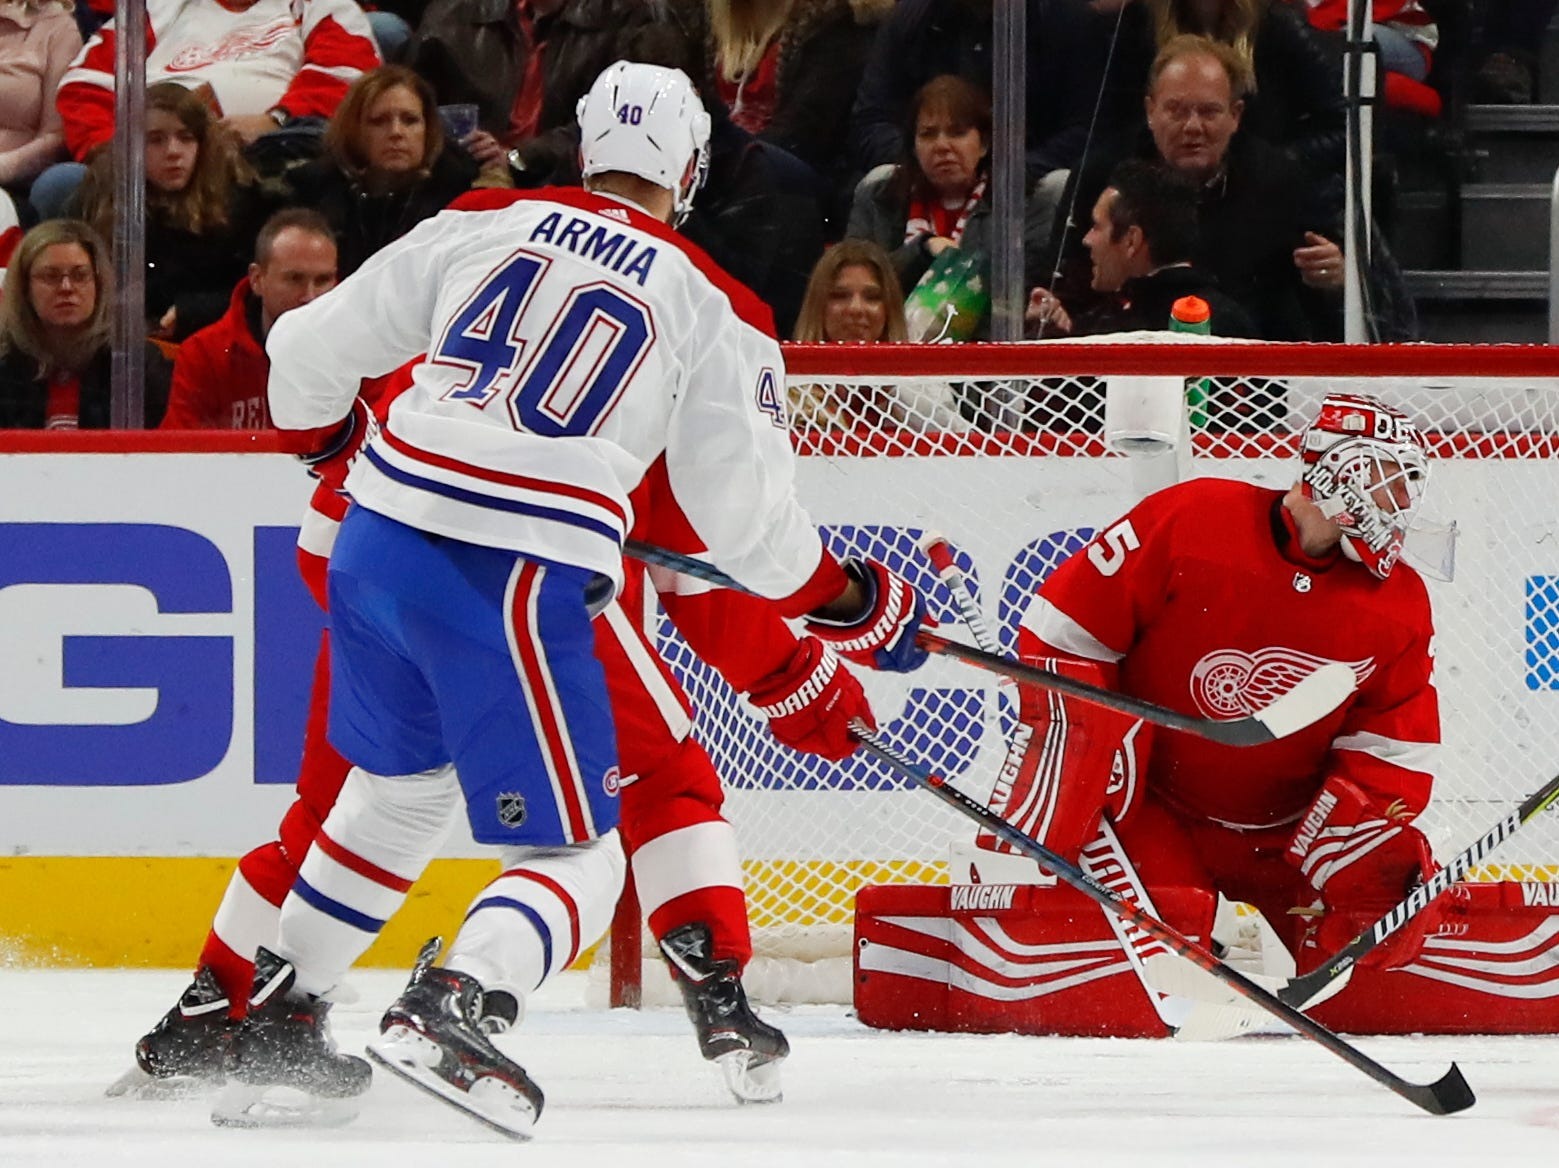 Montreal Canadiens right wing Joel Armia (40) scores on Detroit Red Wings goaltender Jimmy Howard (35) in the second period.